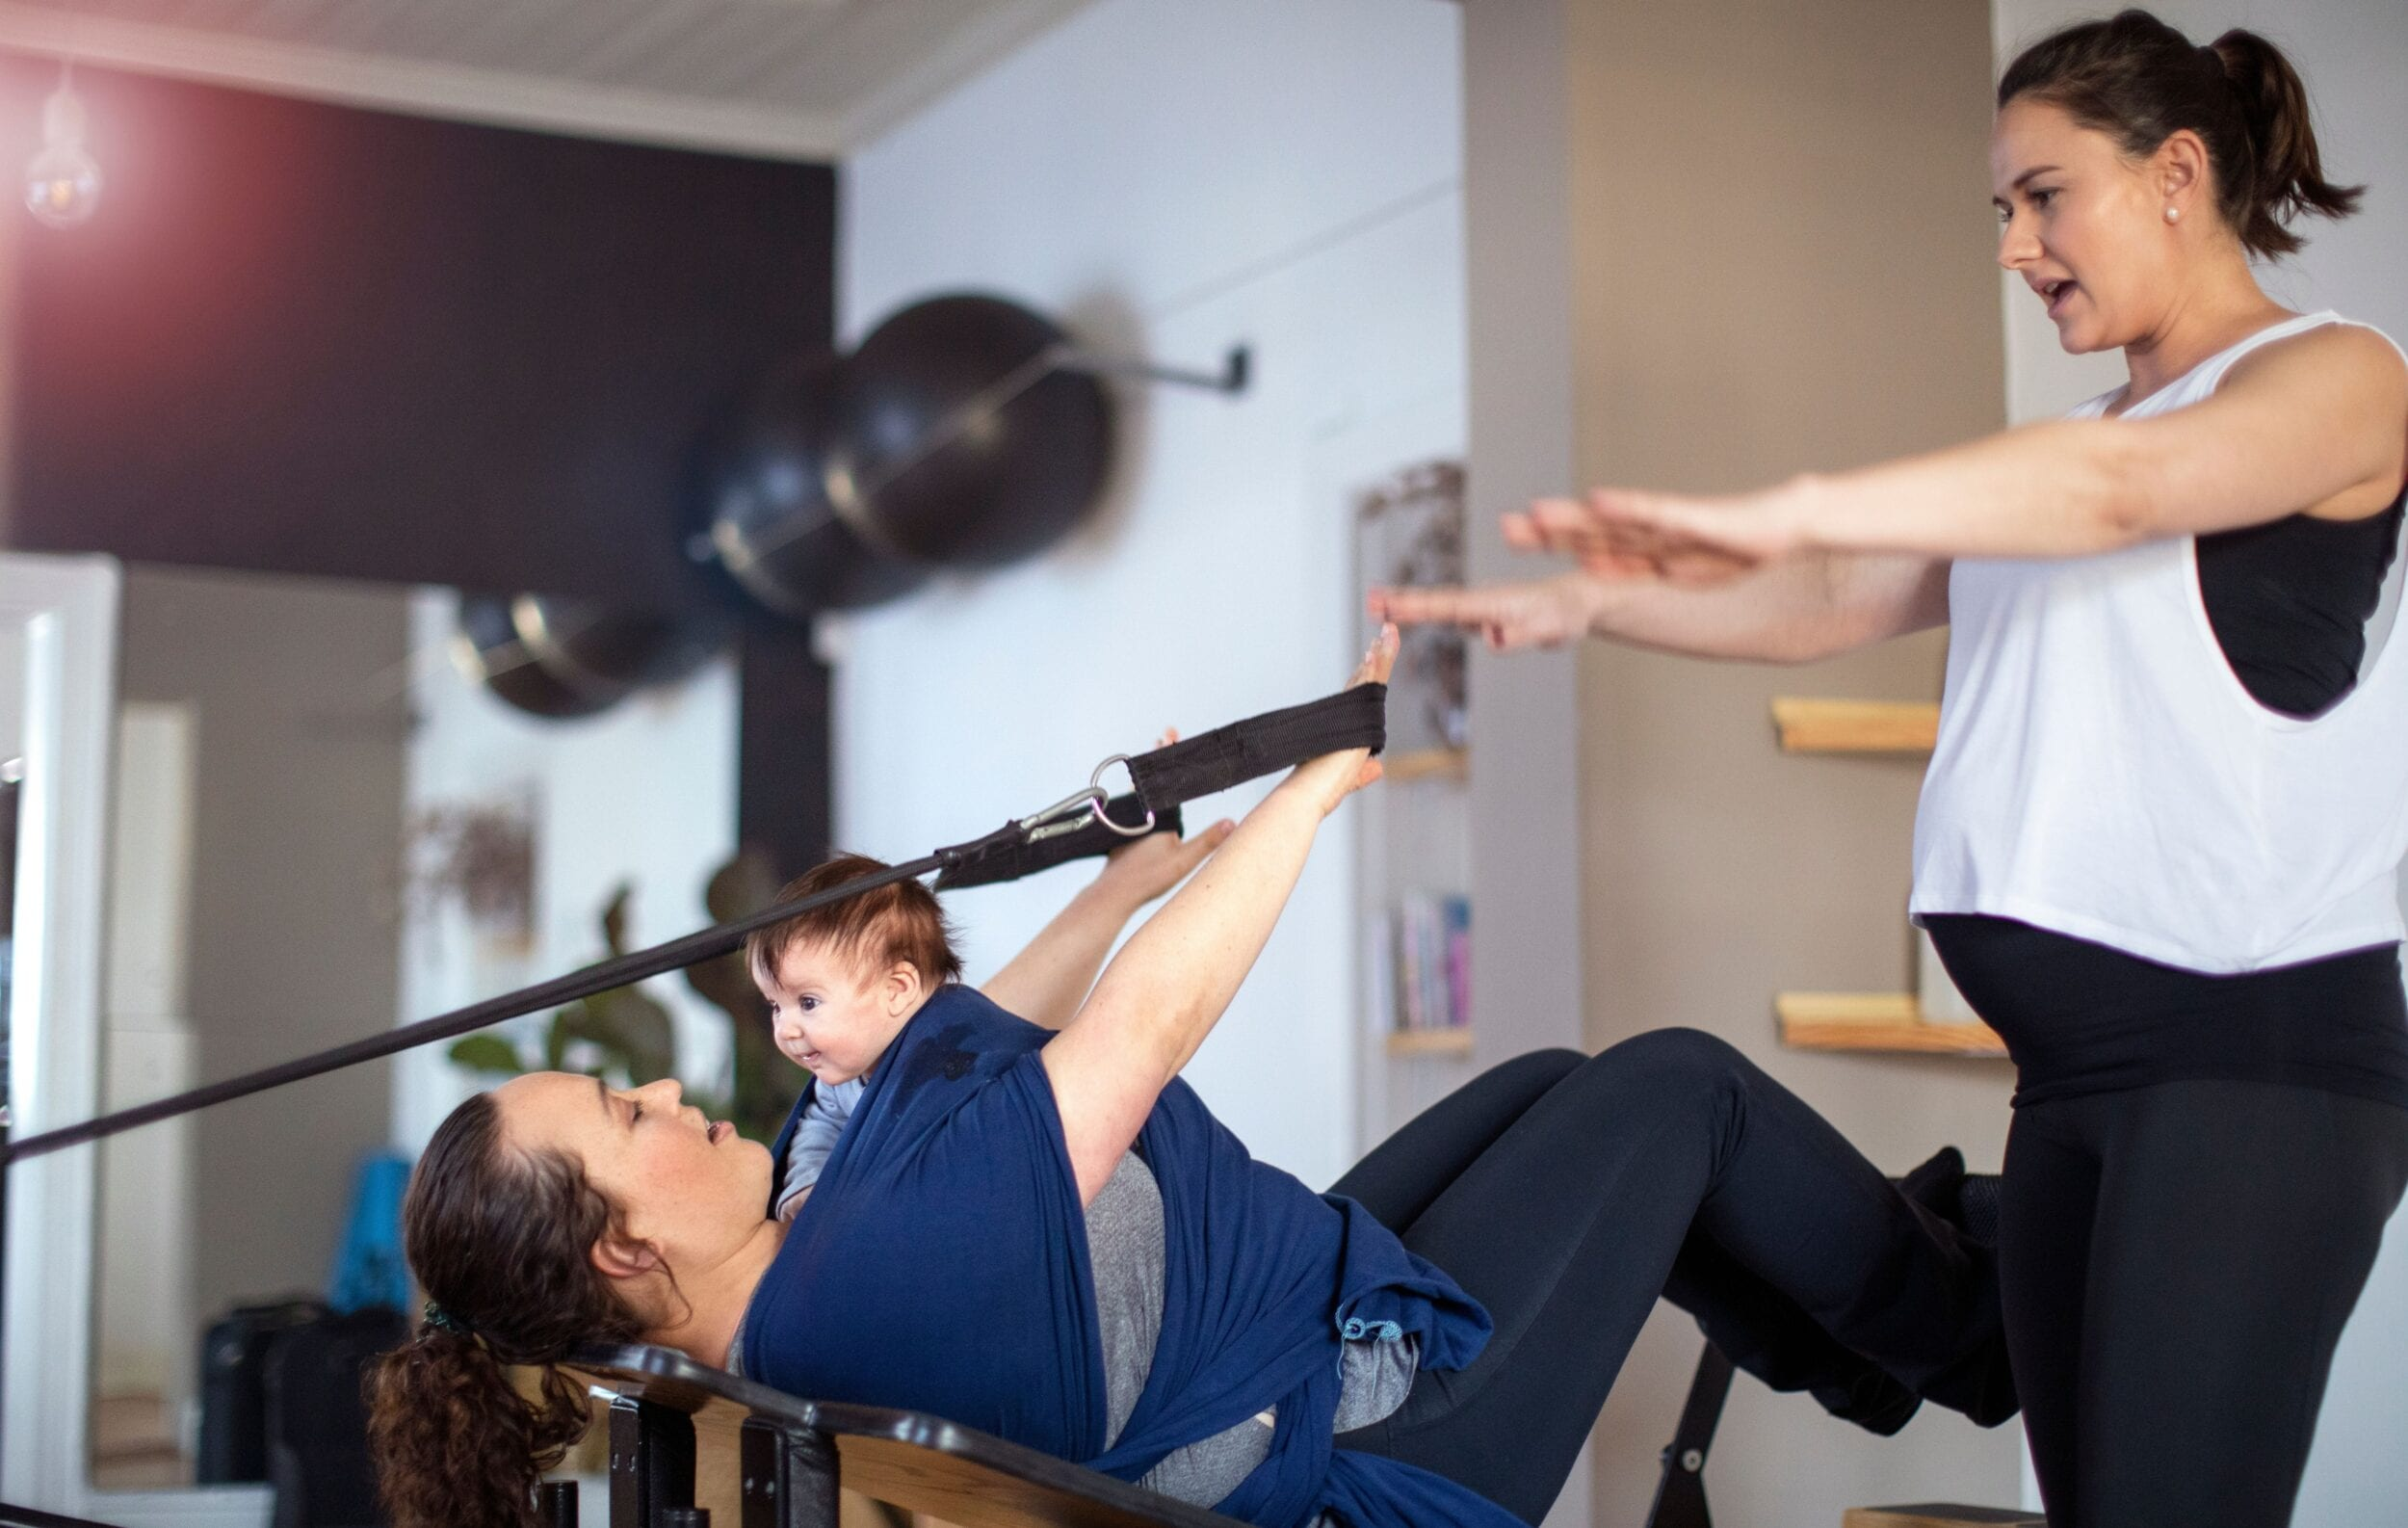 Pregnant Pilates teacher assisting her client while doing the Pilates exercise